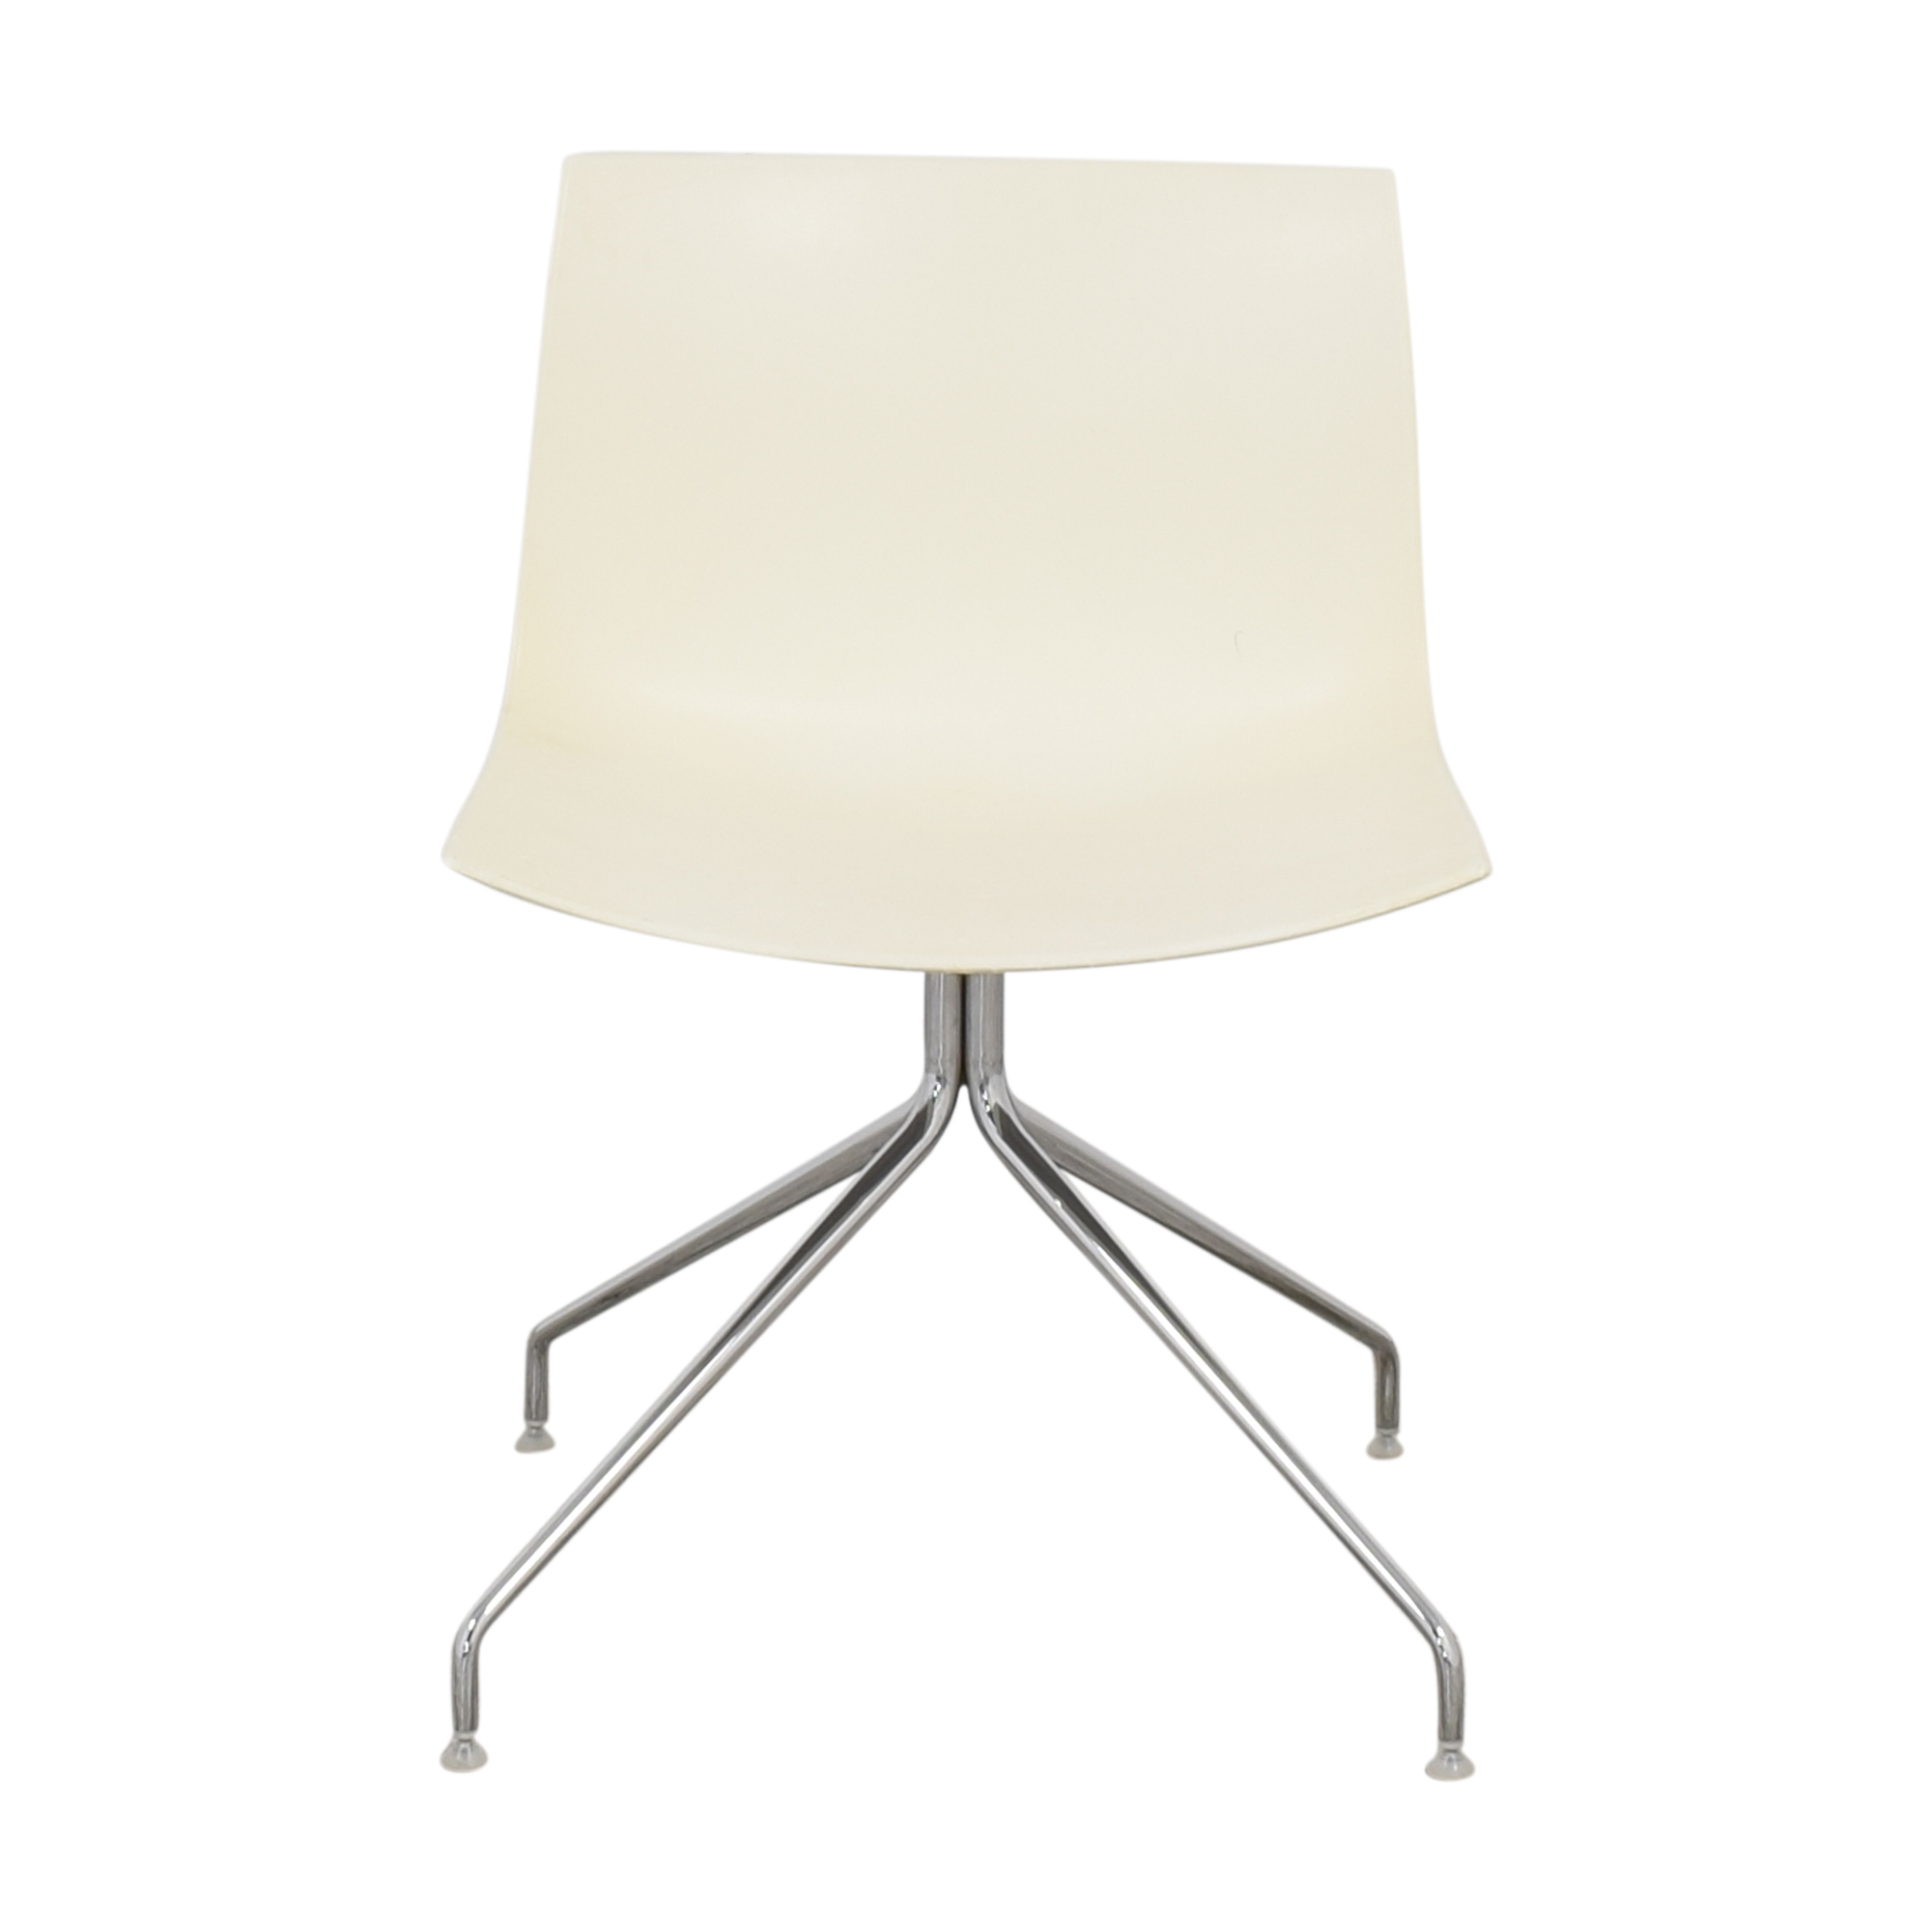 buy Arper Arper Catifa 46 Trestle Swivel Chair online